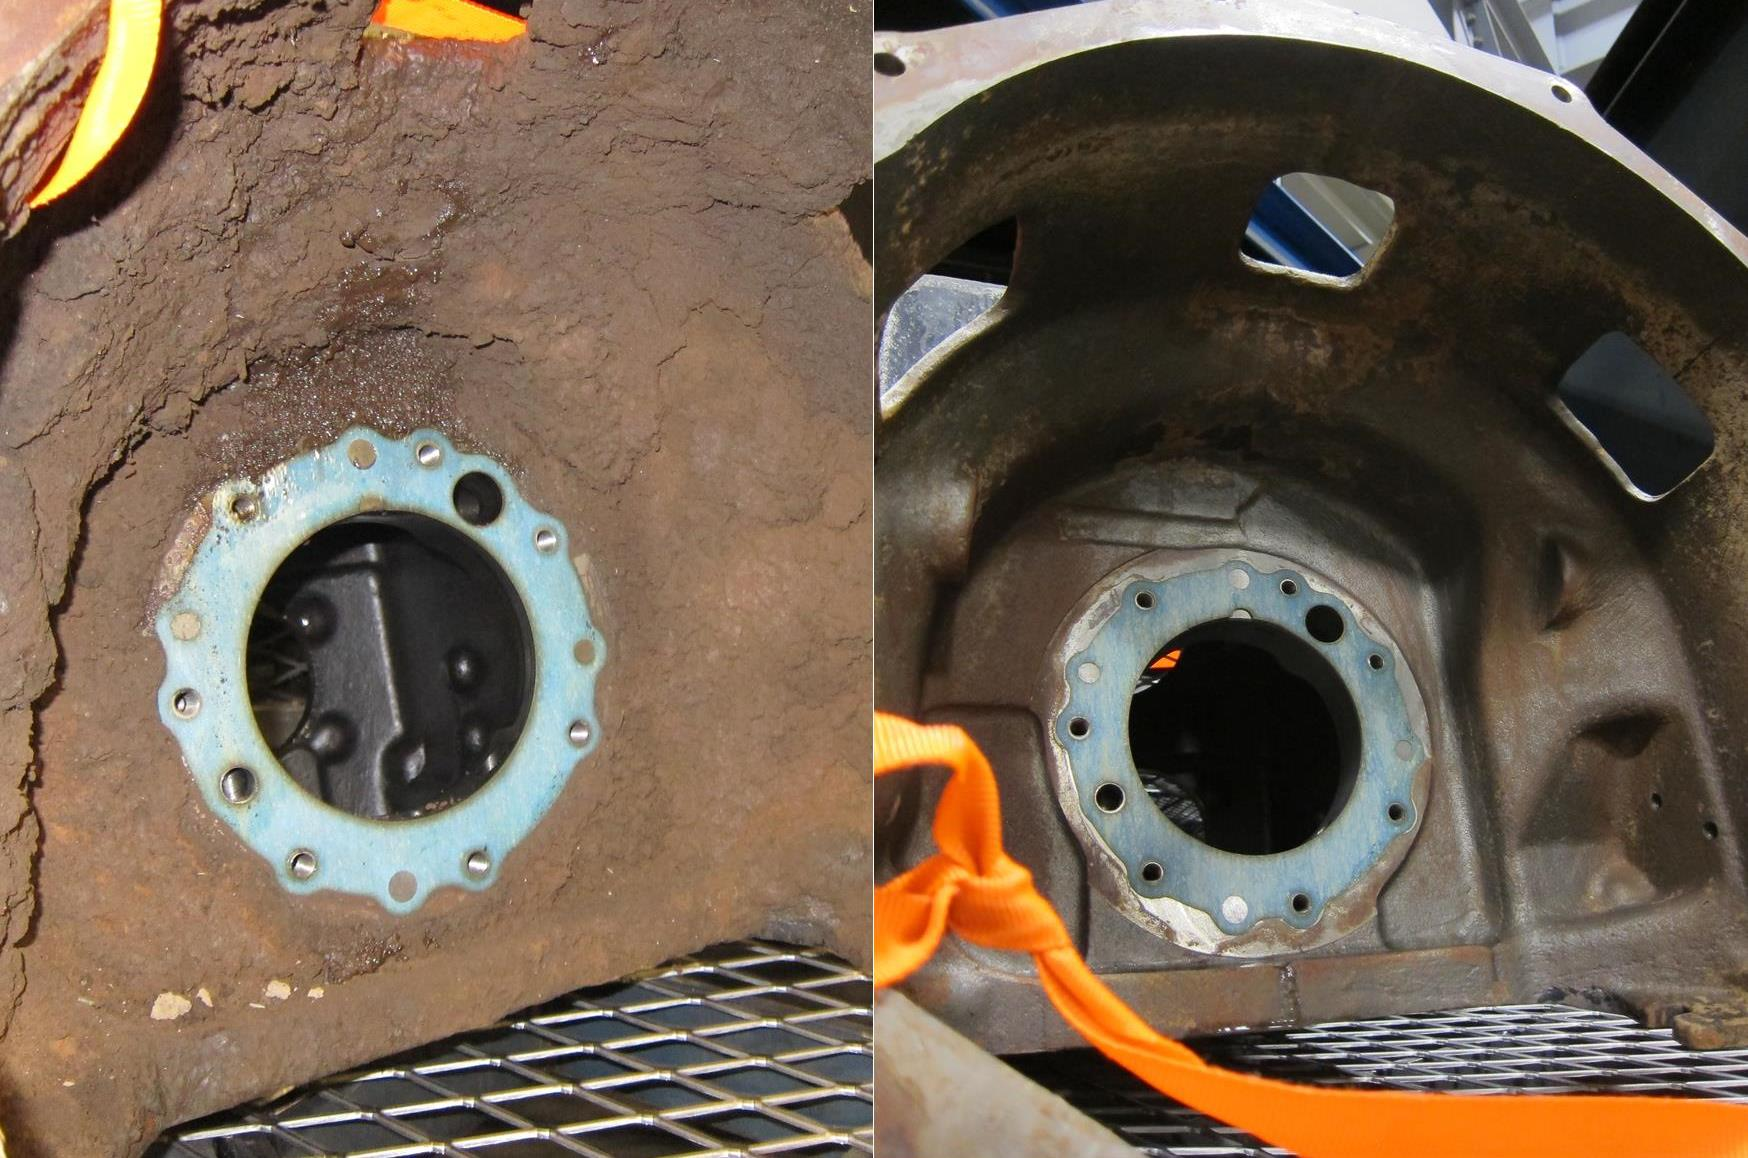 StingRay Heavy Duty Parts Washer Transmission Case Before and After